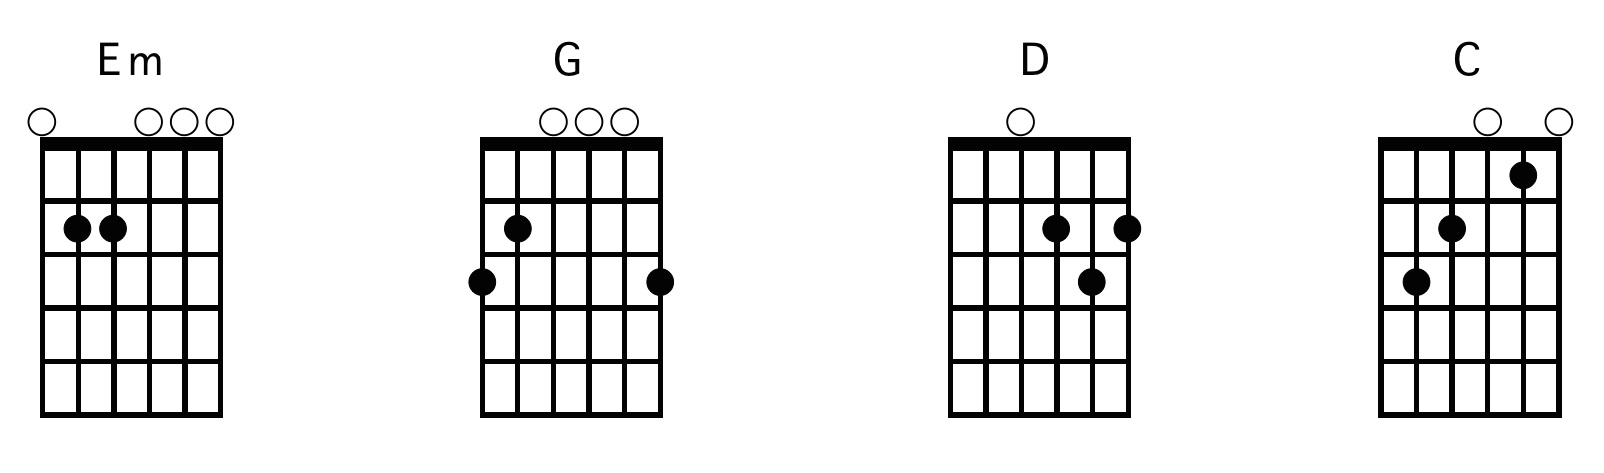 tips-for-guitar-beginners_1.png